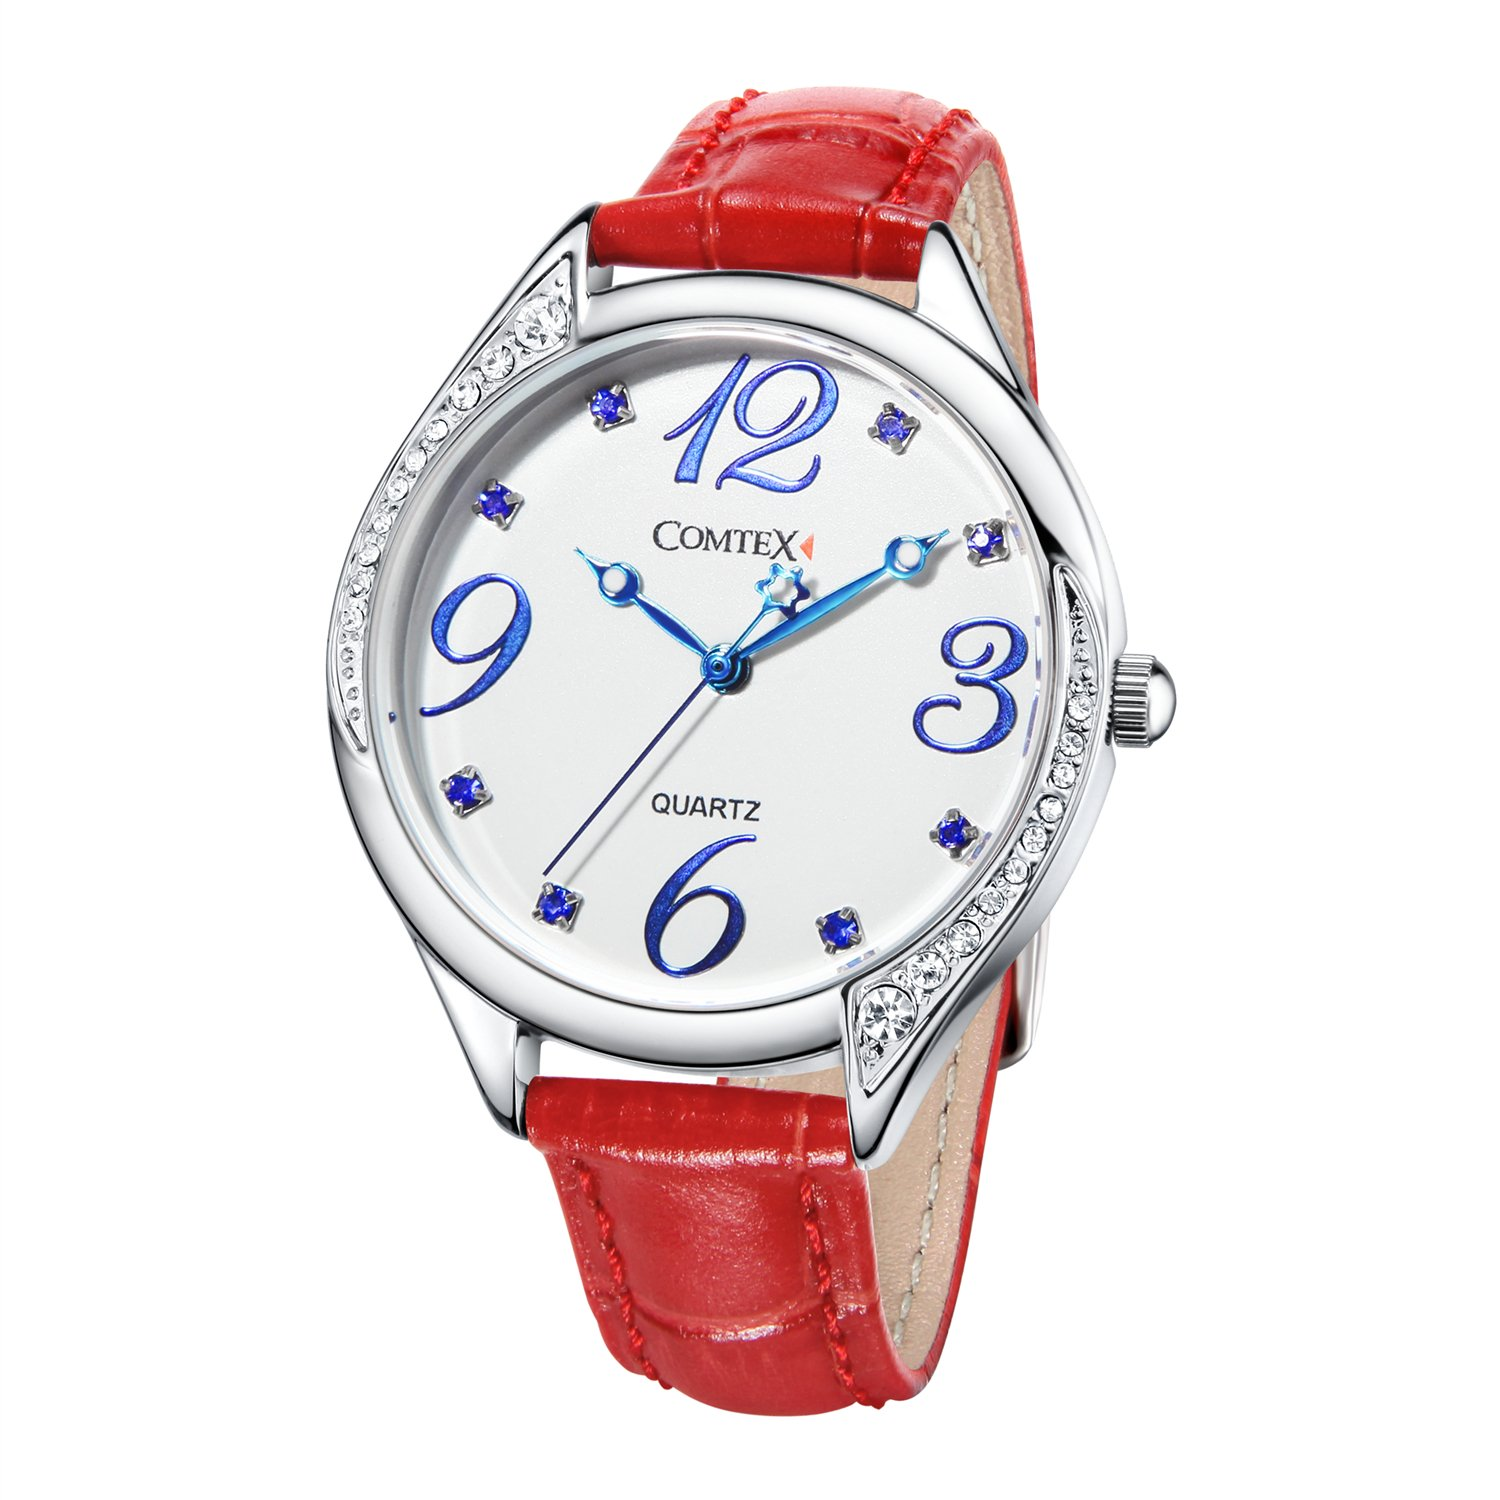 fa8392dc9 Amazon.com: Comtex Watches for Lady Red Leather Strap Womens Easy to Read  Waterproof Watches with Large Numbers: Watches